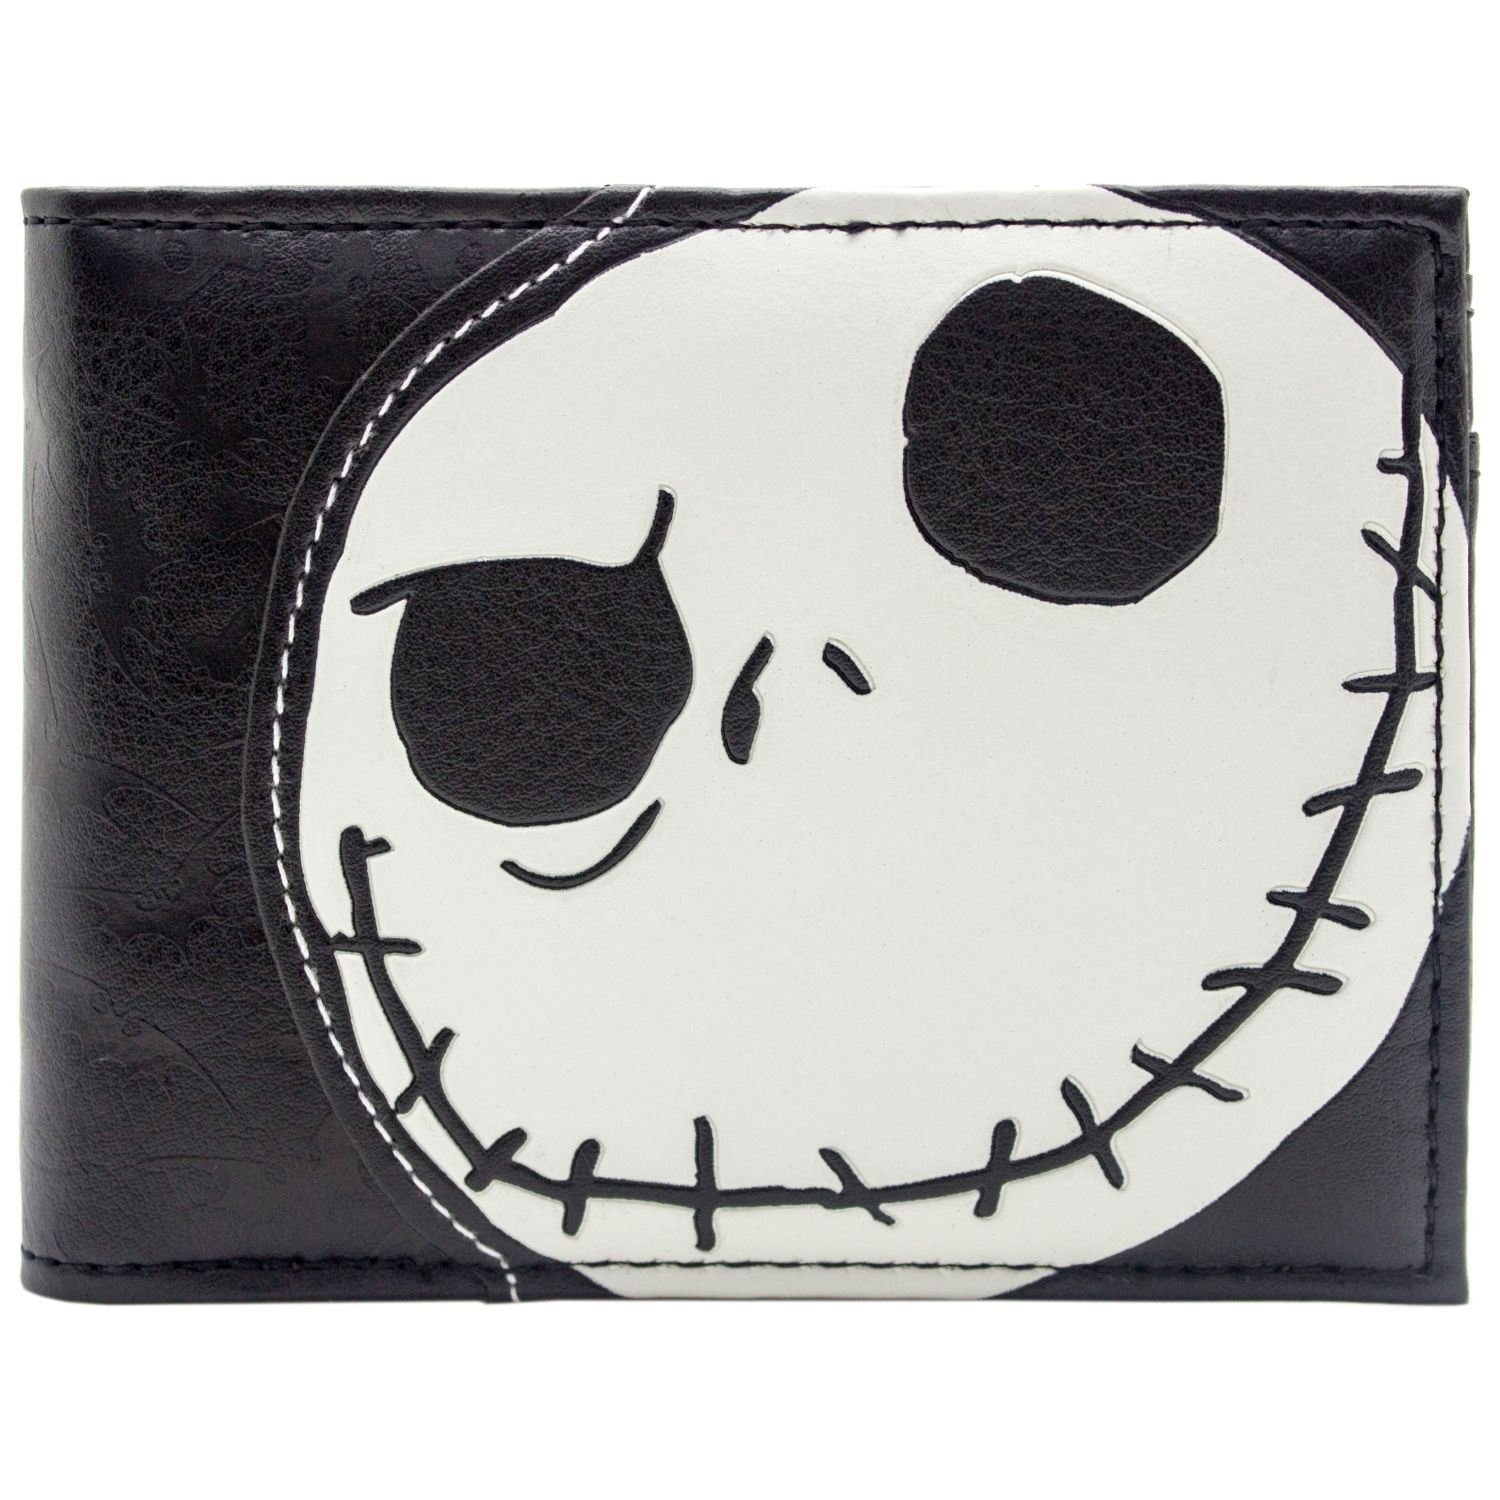 Cartera de Tim Burton Nightmare Before Christmas En relieve Jack Skellington Negro 27759